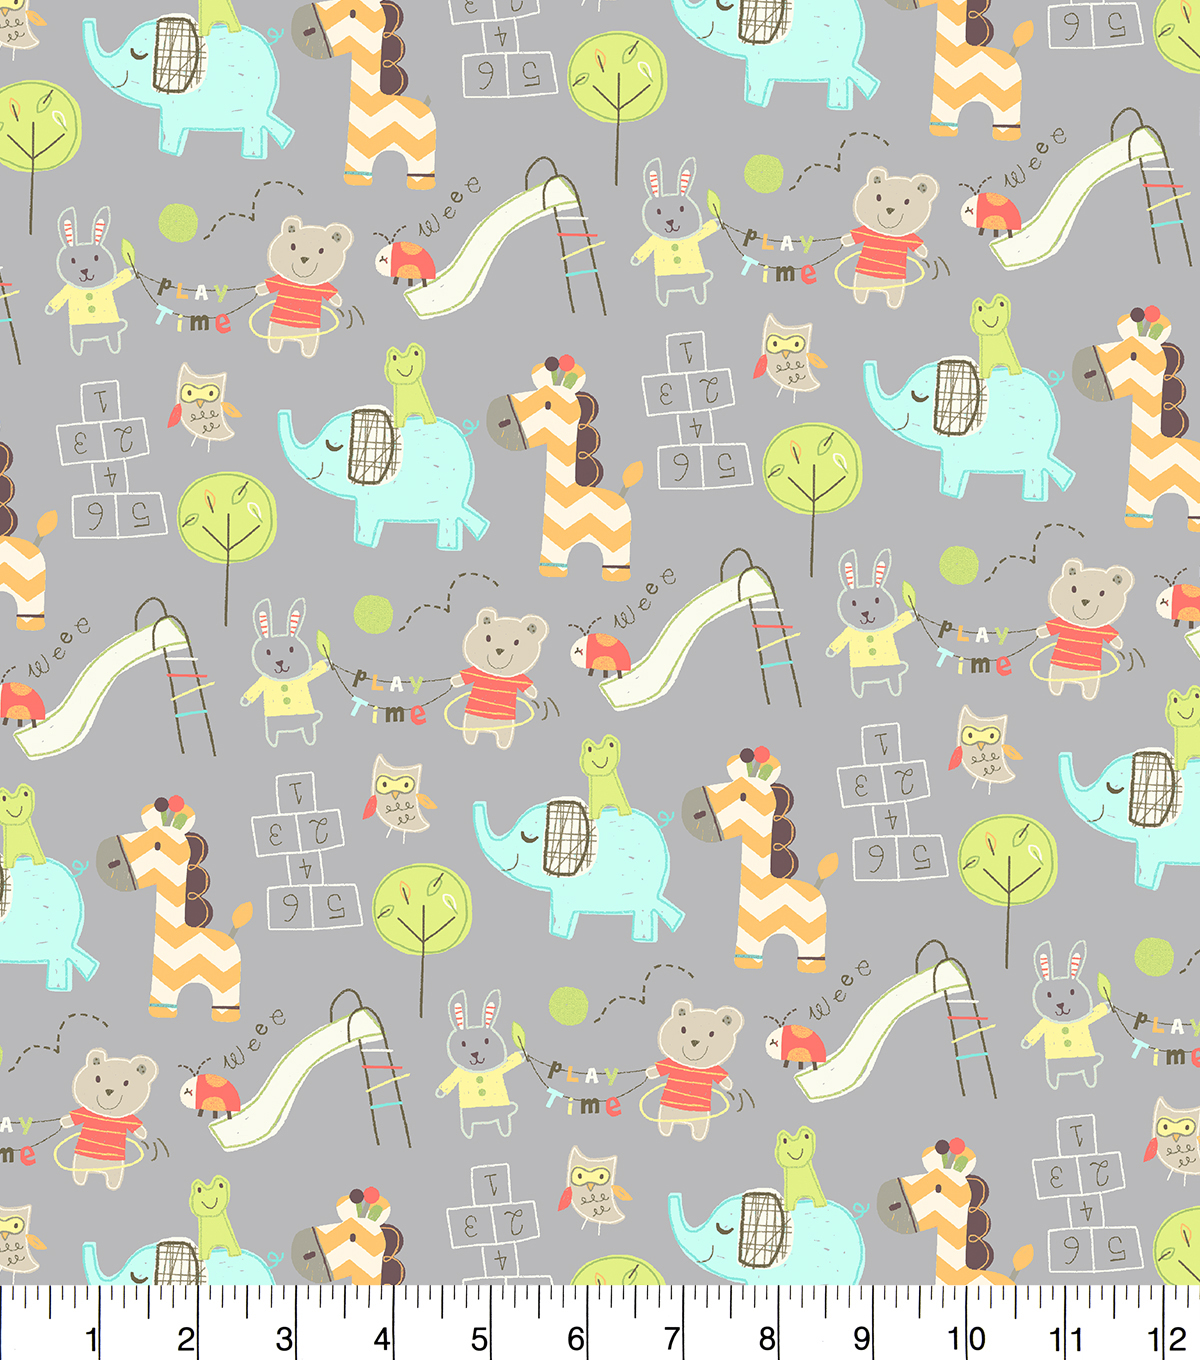 Snuggle Flannel Fabric 42''-Play Time Friends